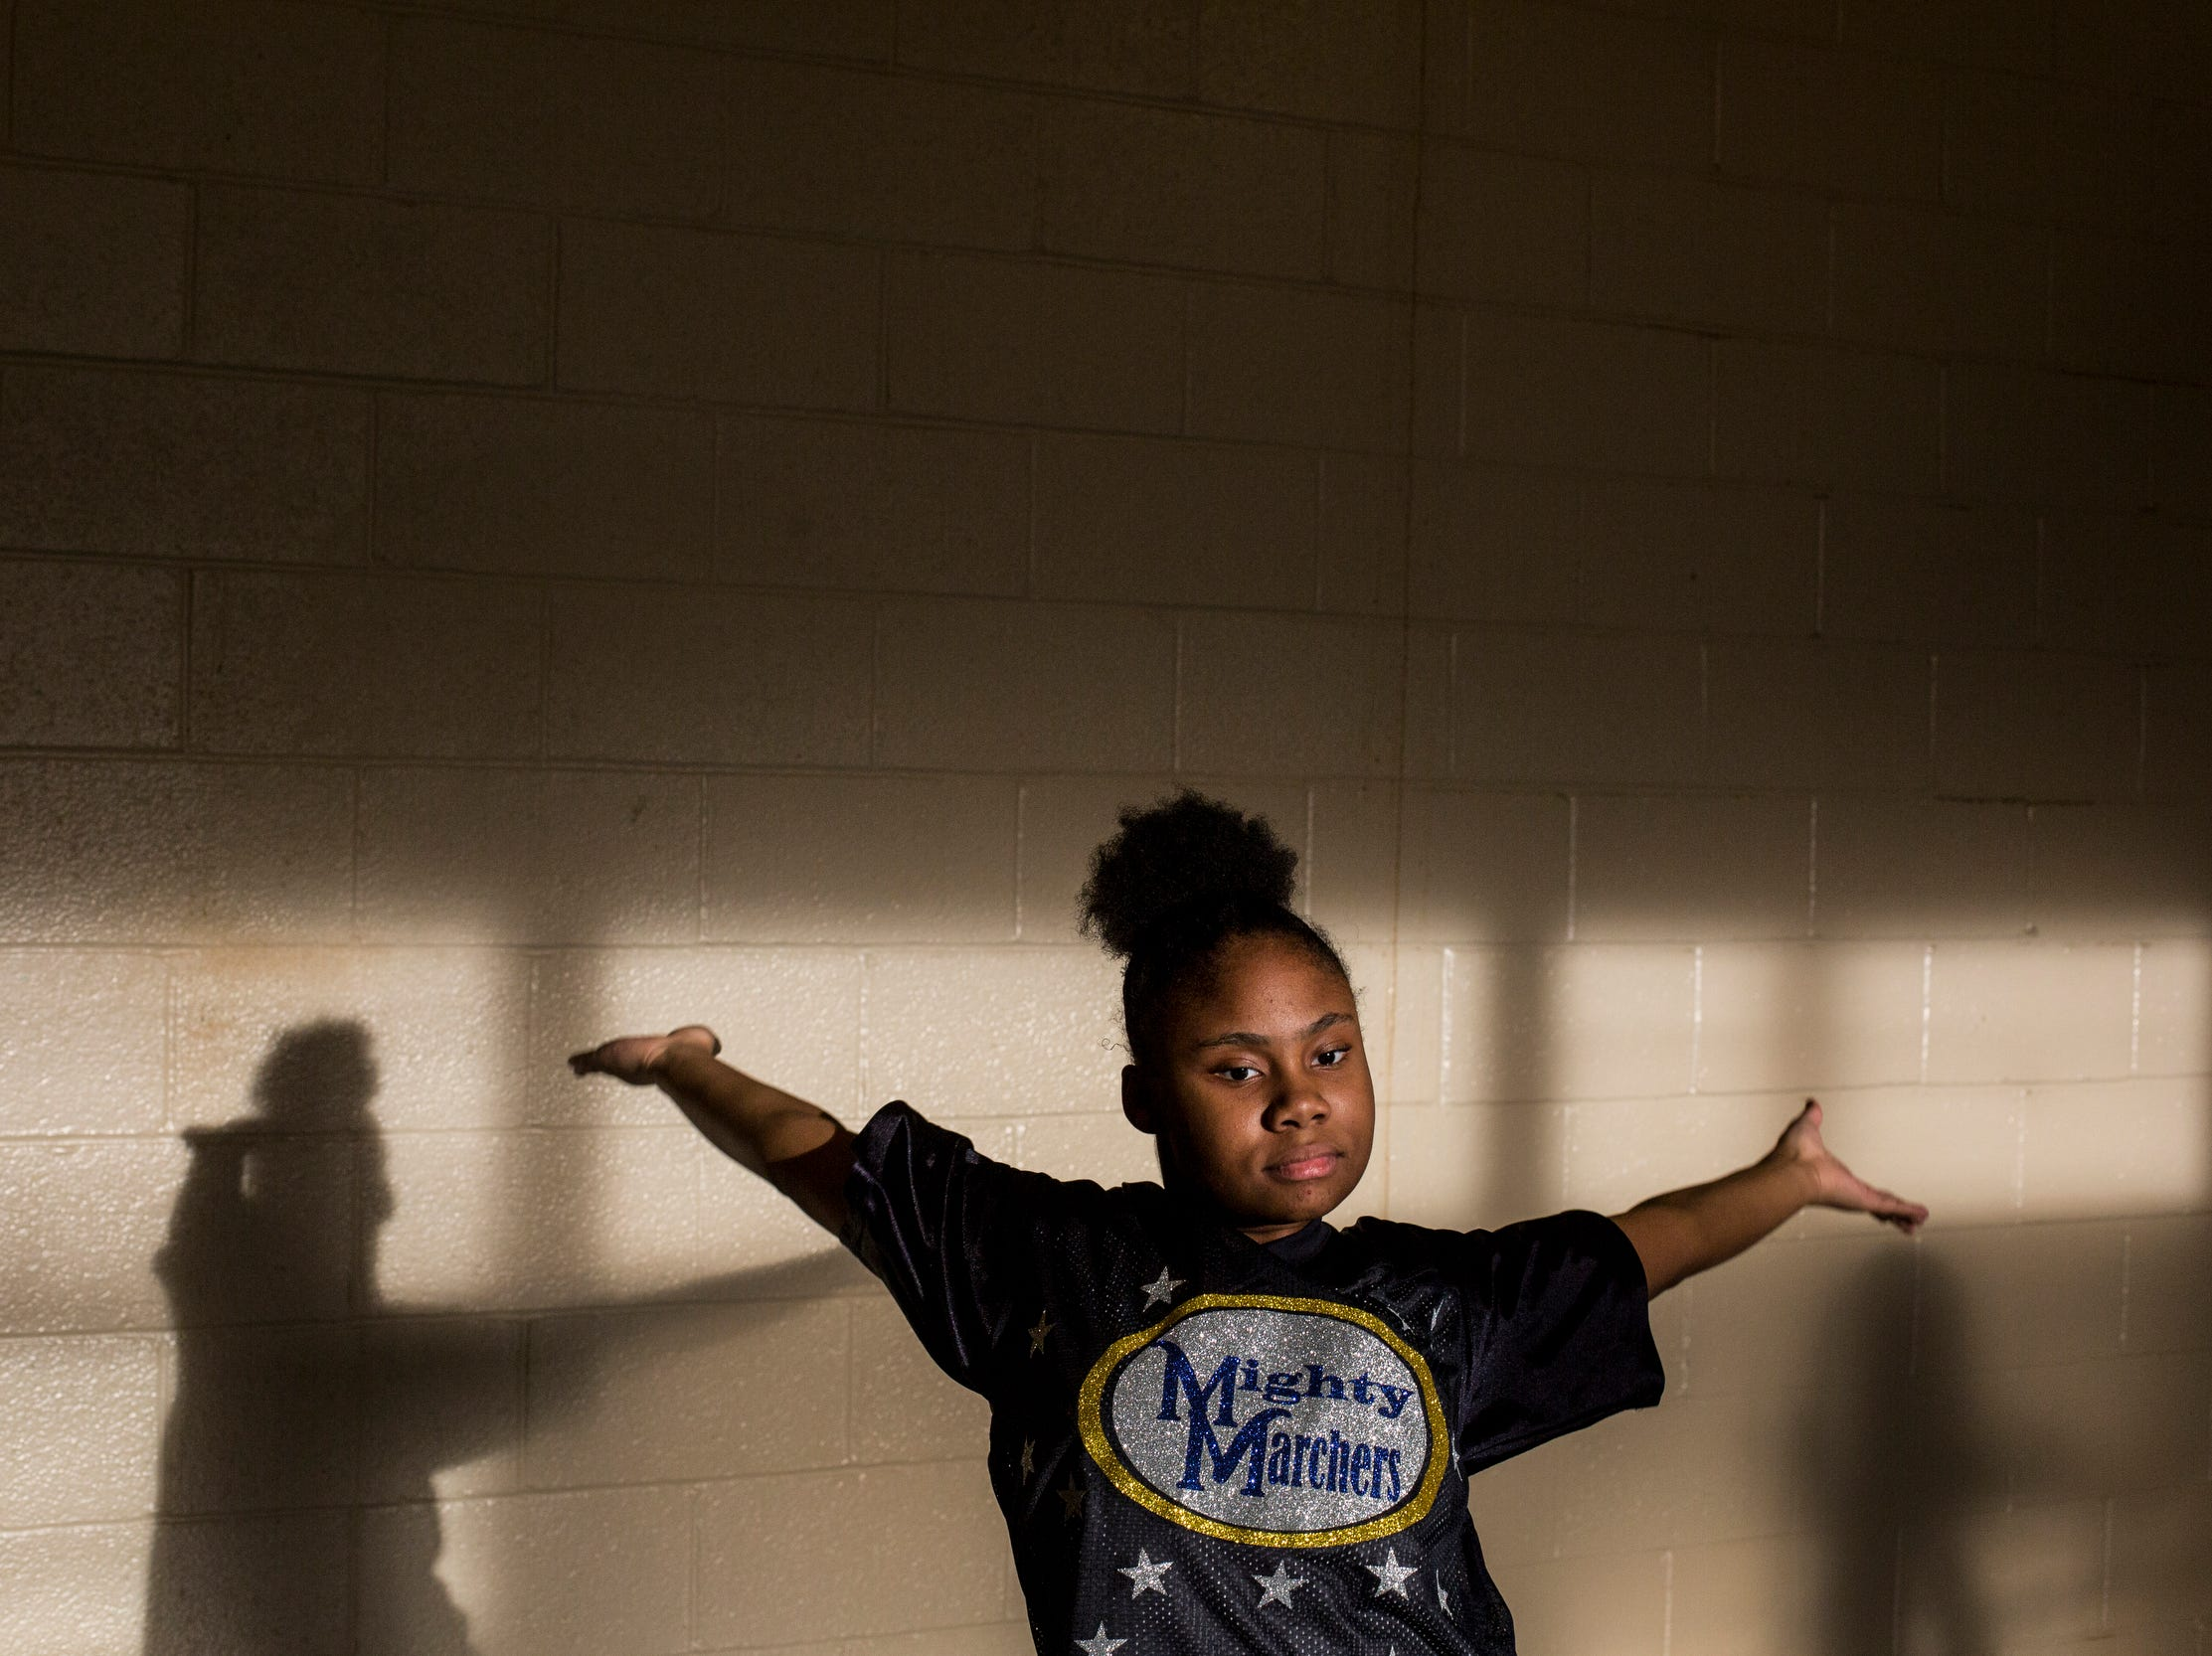 Angel Mitchell, 12, a member of the Memphis Community Youth Mighty Marchers, works on a dance move during a practice at the Ed Rice Community Center in Frayser on March 28, 2019.